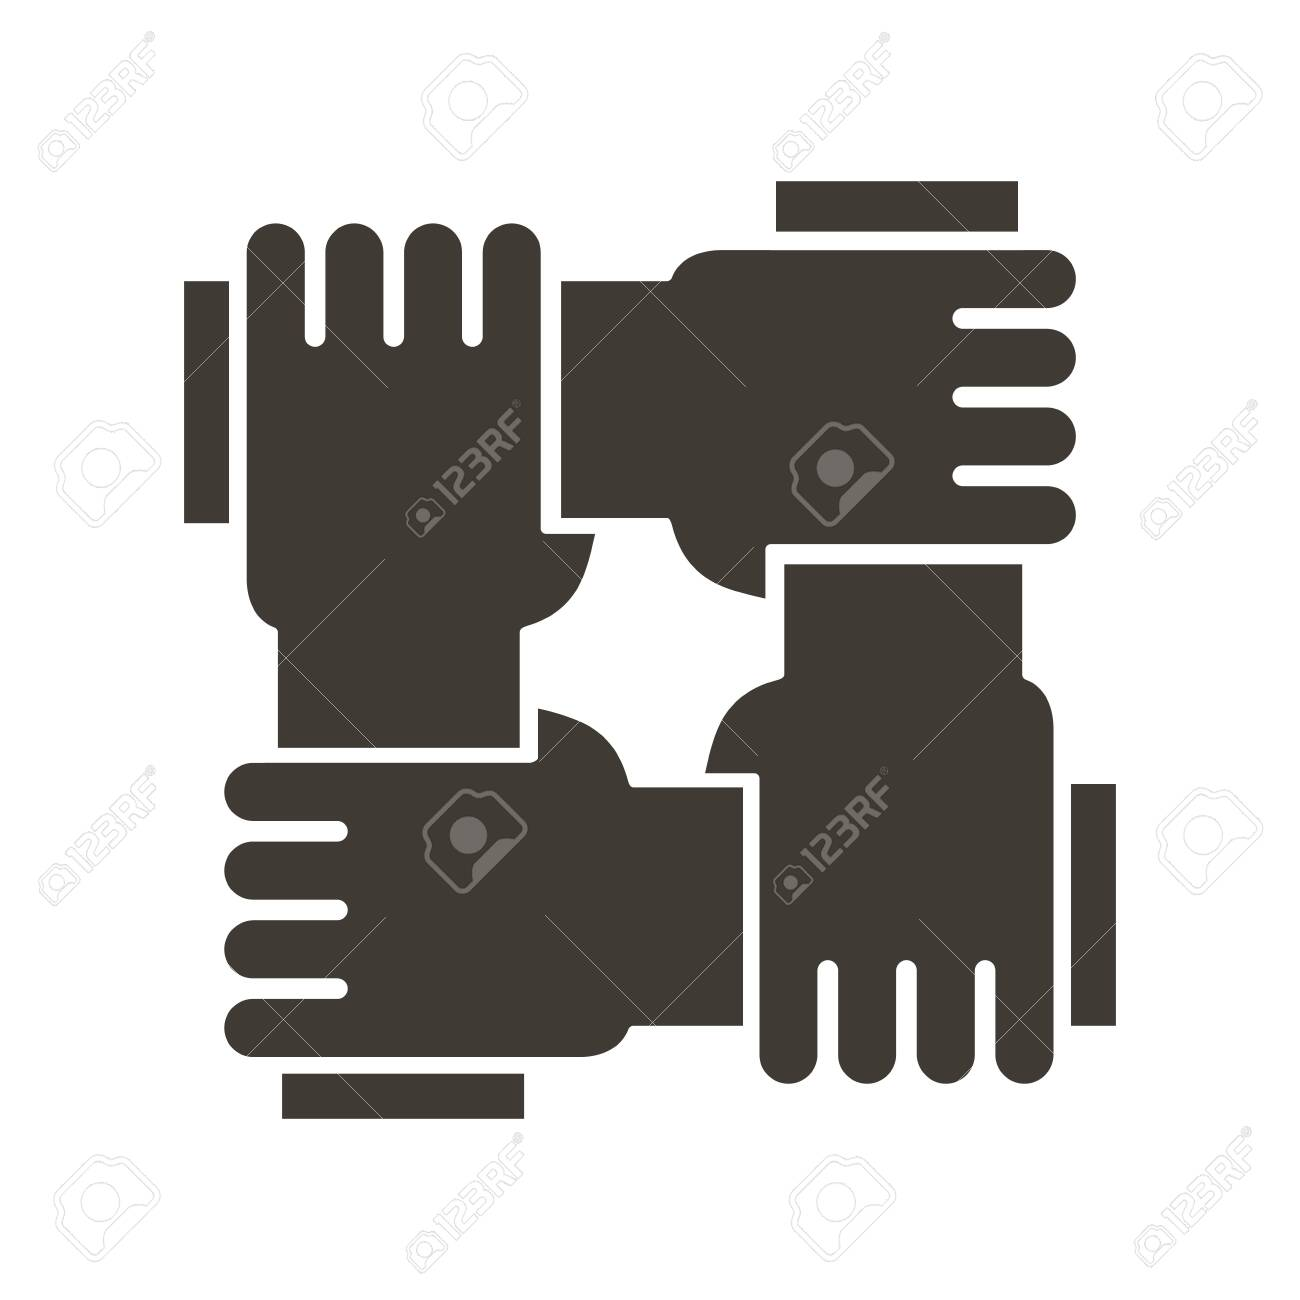 Stylized icon design with 4 hands holding together. Illustration for different concepts like teamwork, community, unity and equality - 134503196